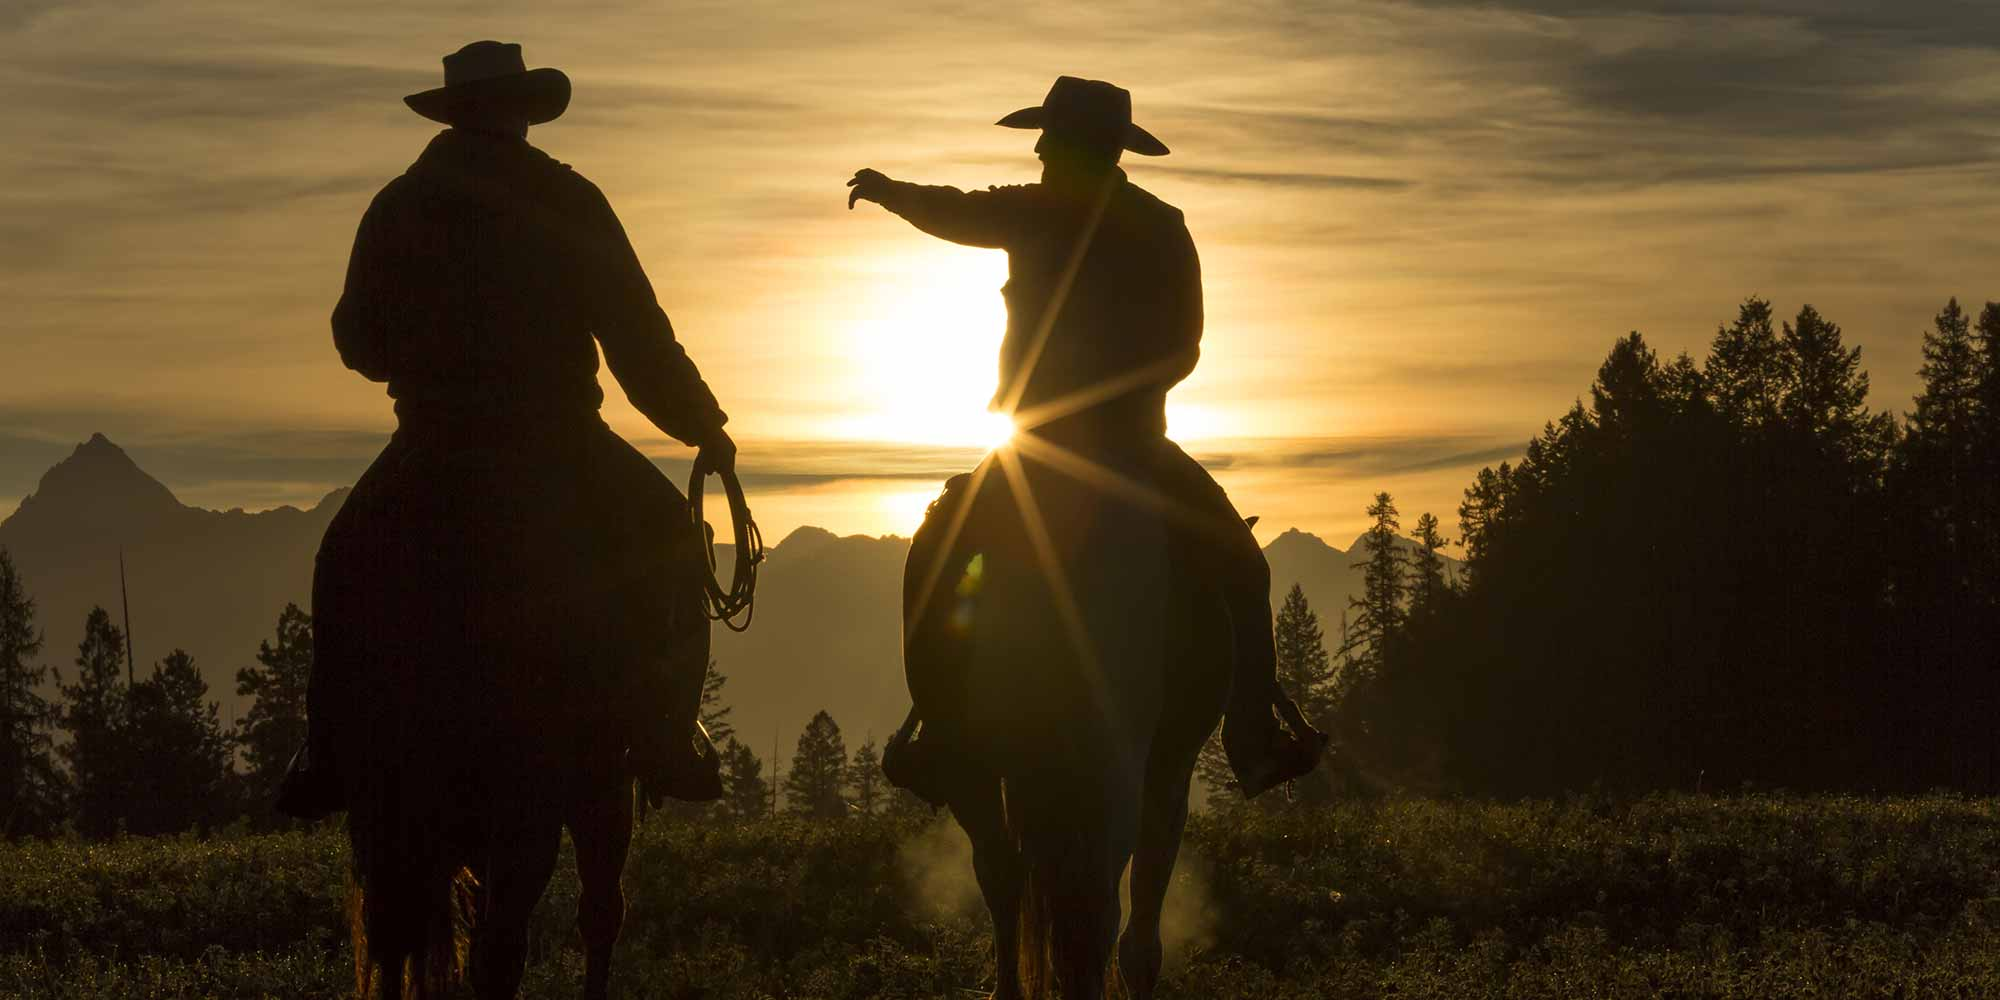 EQ Graphics | Cowboy Silhouettes Riding Horses into The Sunset